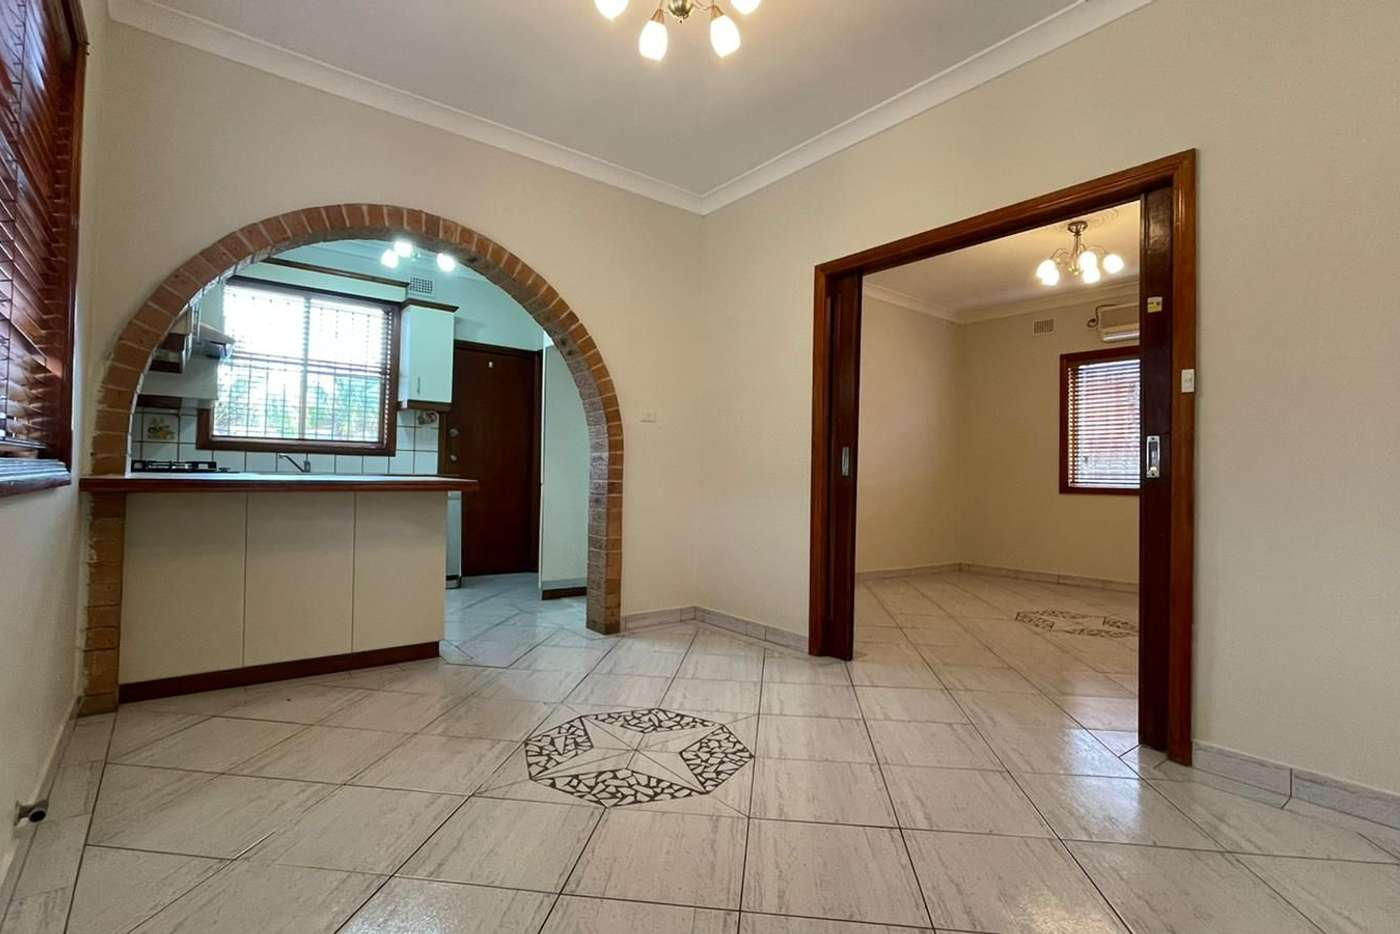 Sixth view of Homely house listing, 16 Wells Street, Granville NSW 2142